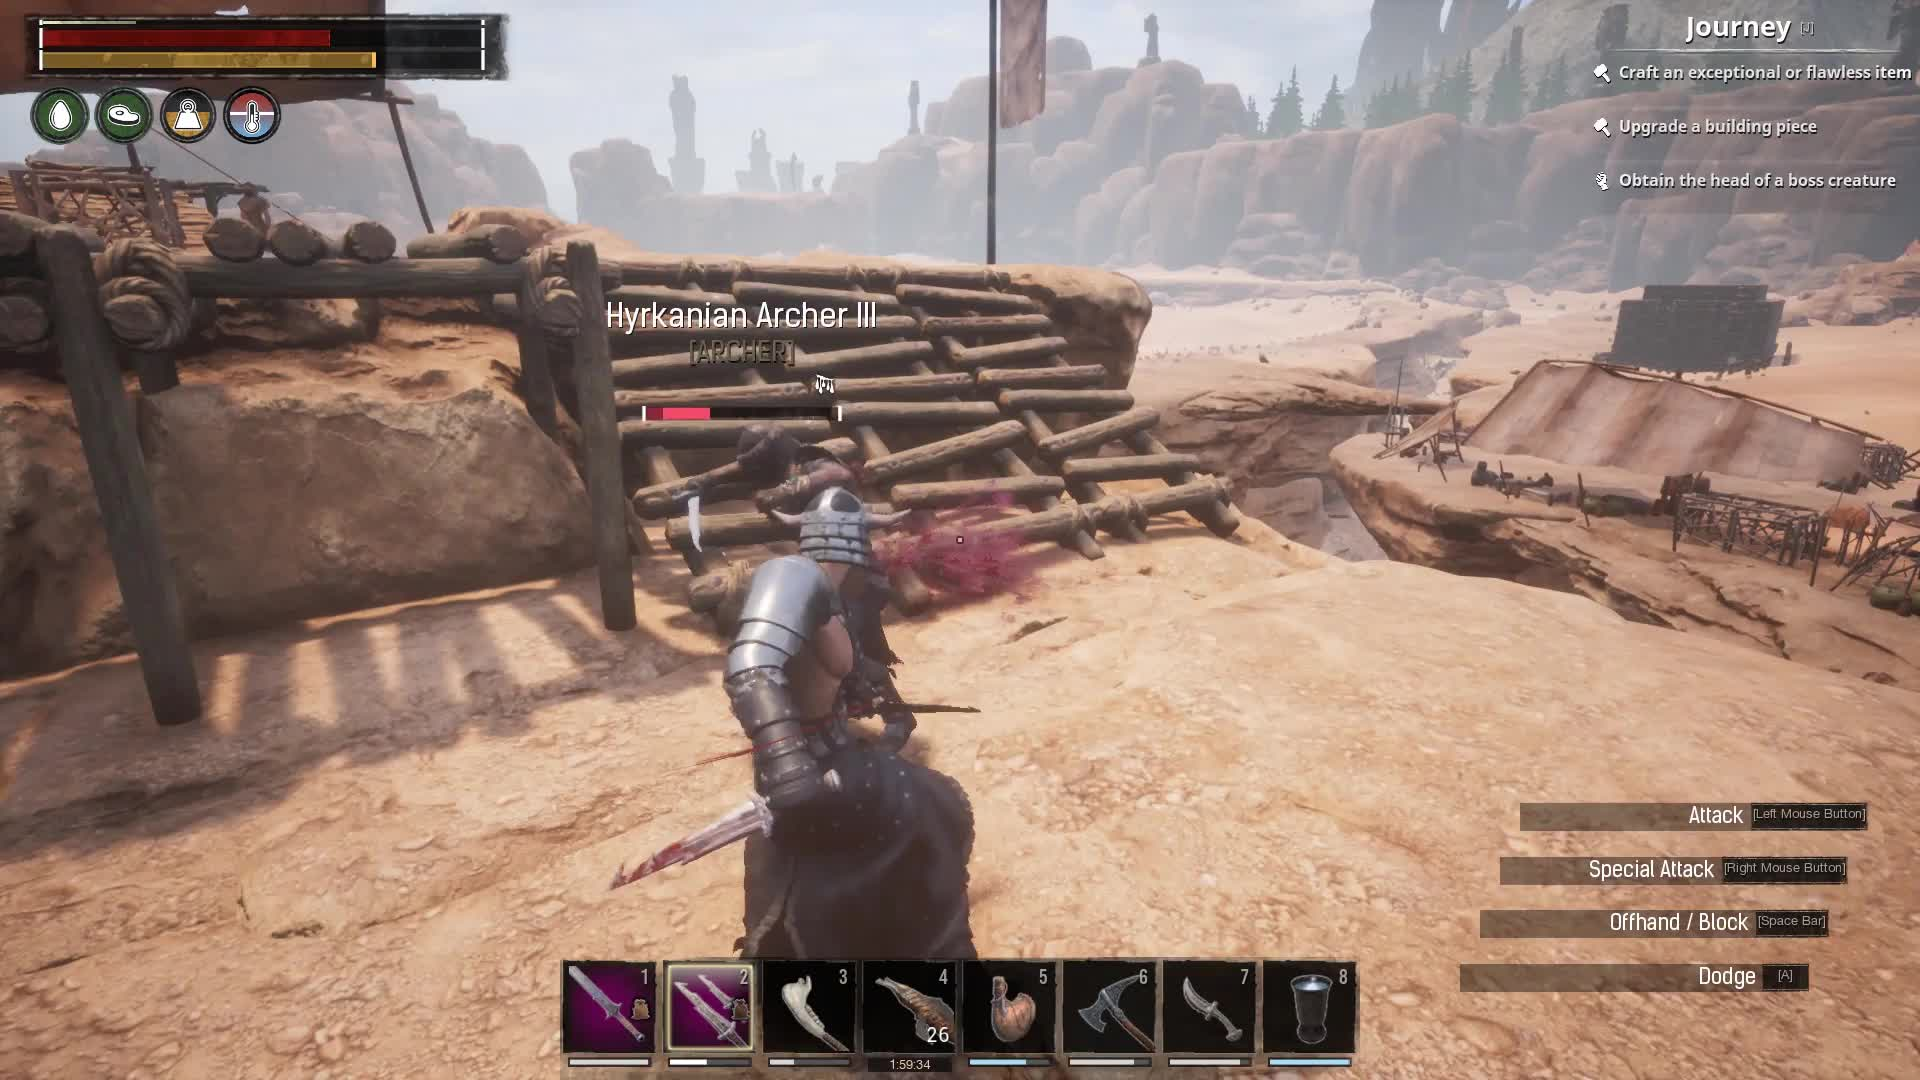 Melee Combat Gifs Search   Search & Share on Homdor